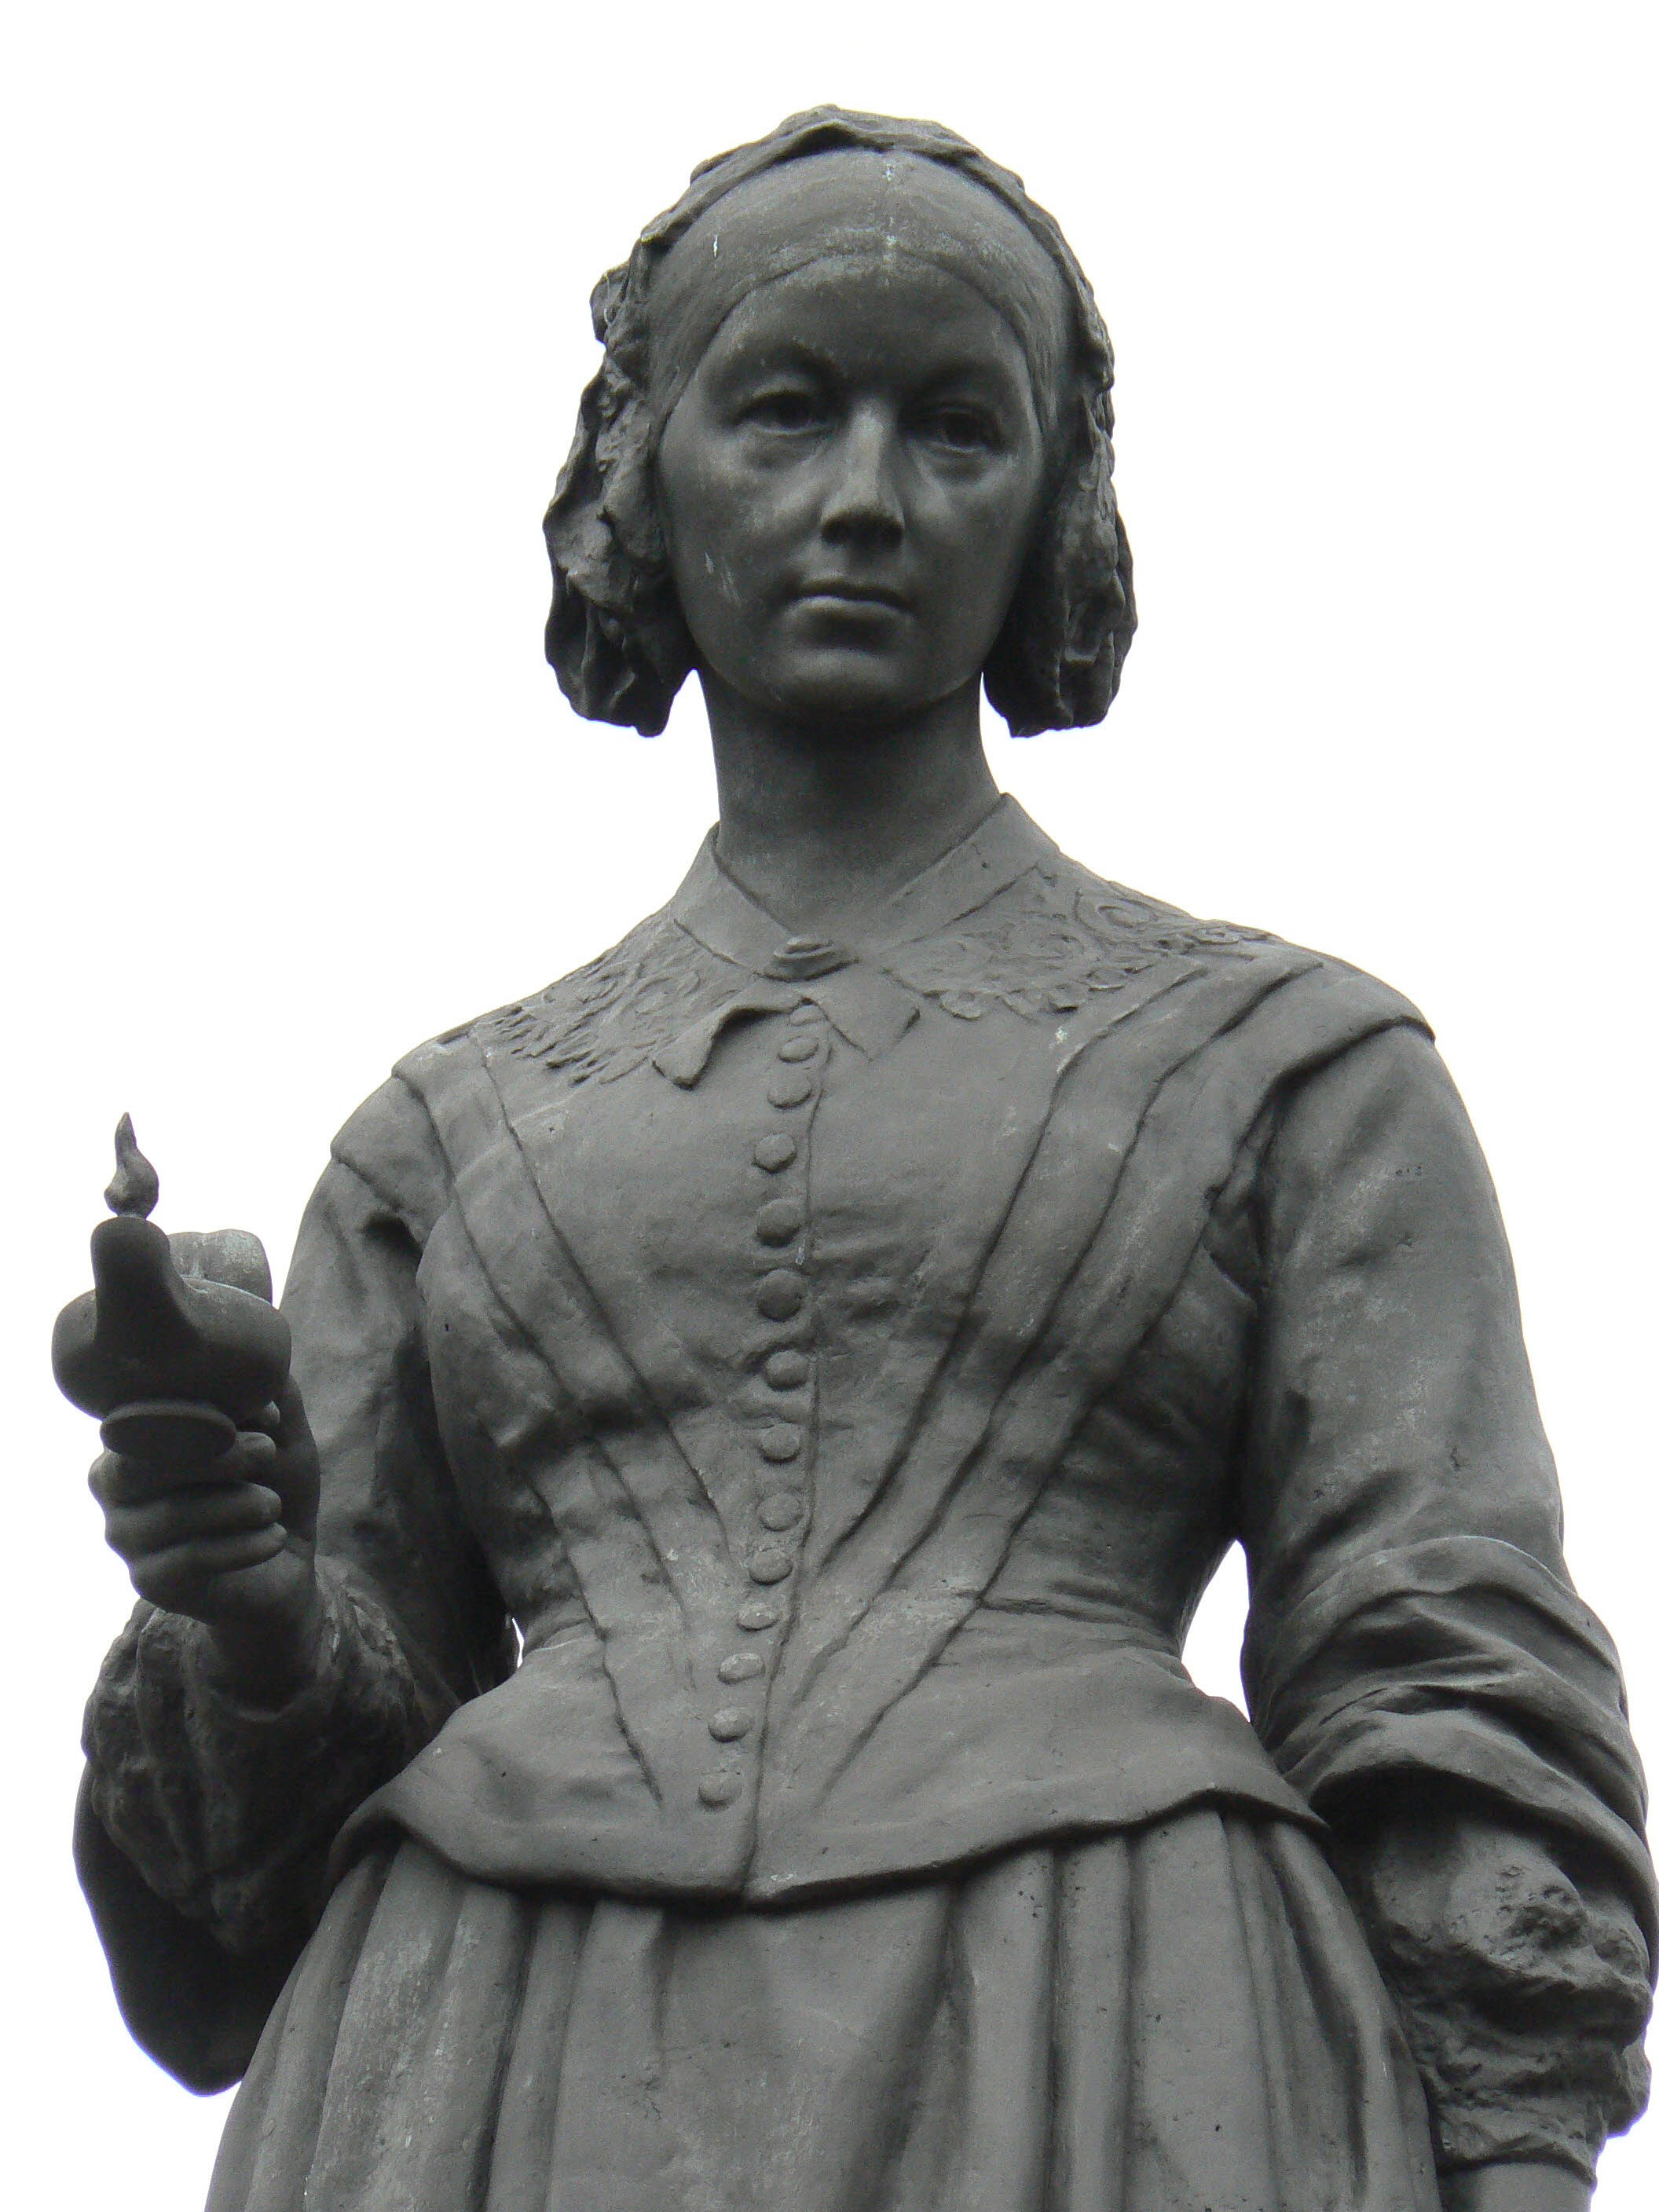 Florence Nightingale's quote